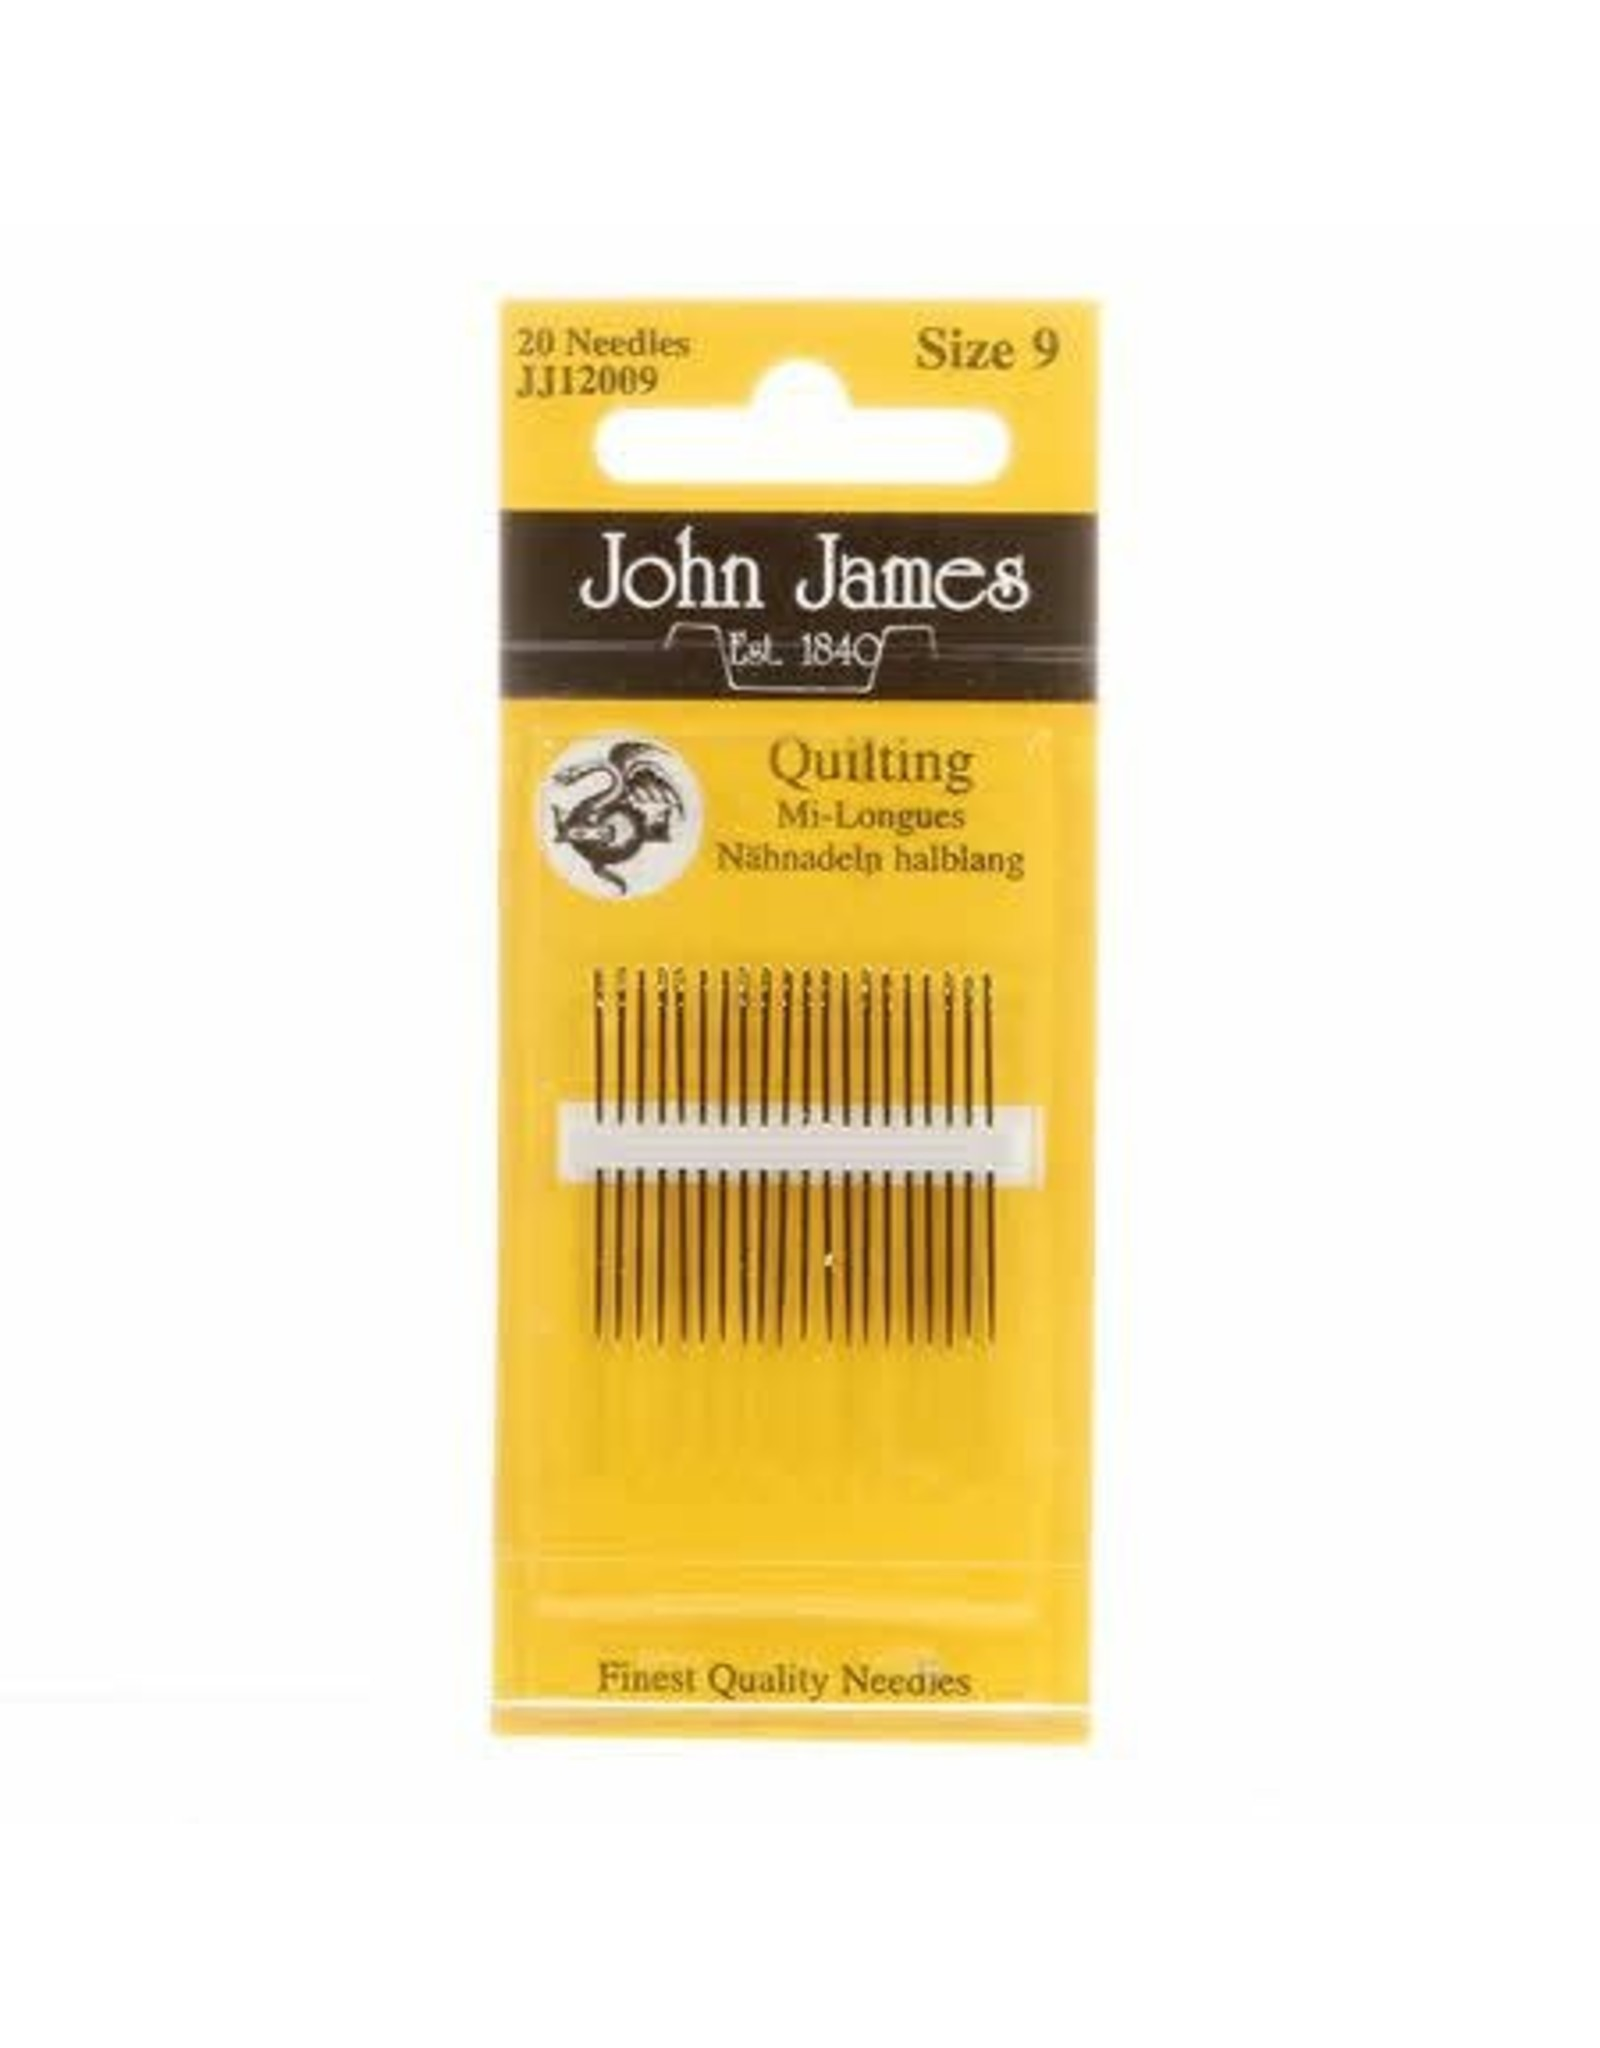 PD Quilting Needles size 9, 20ct., John James